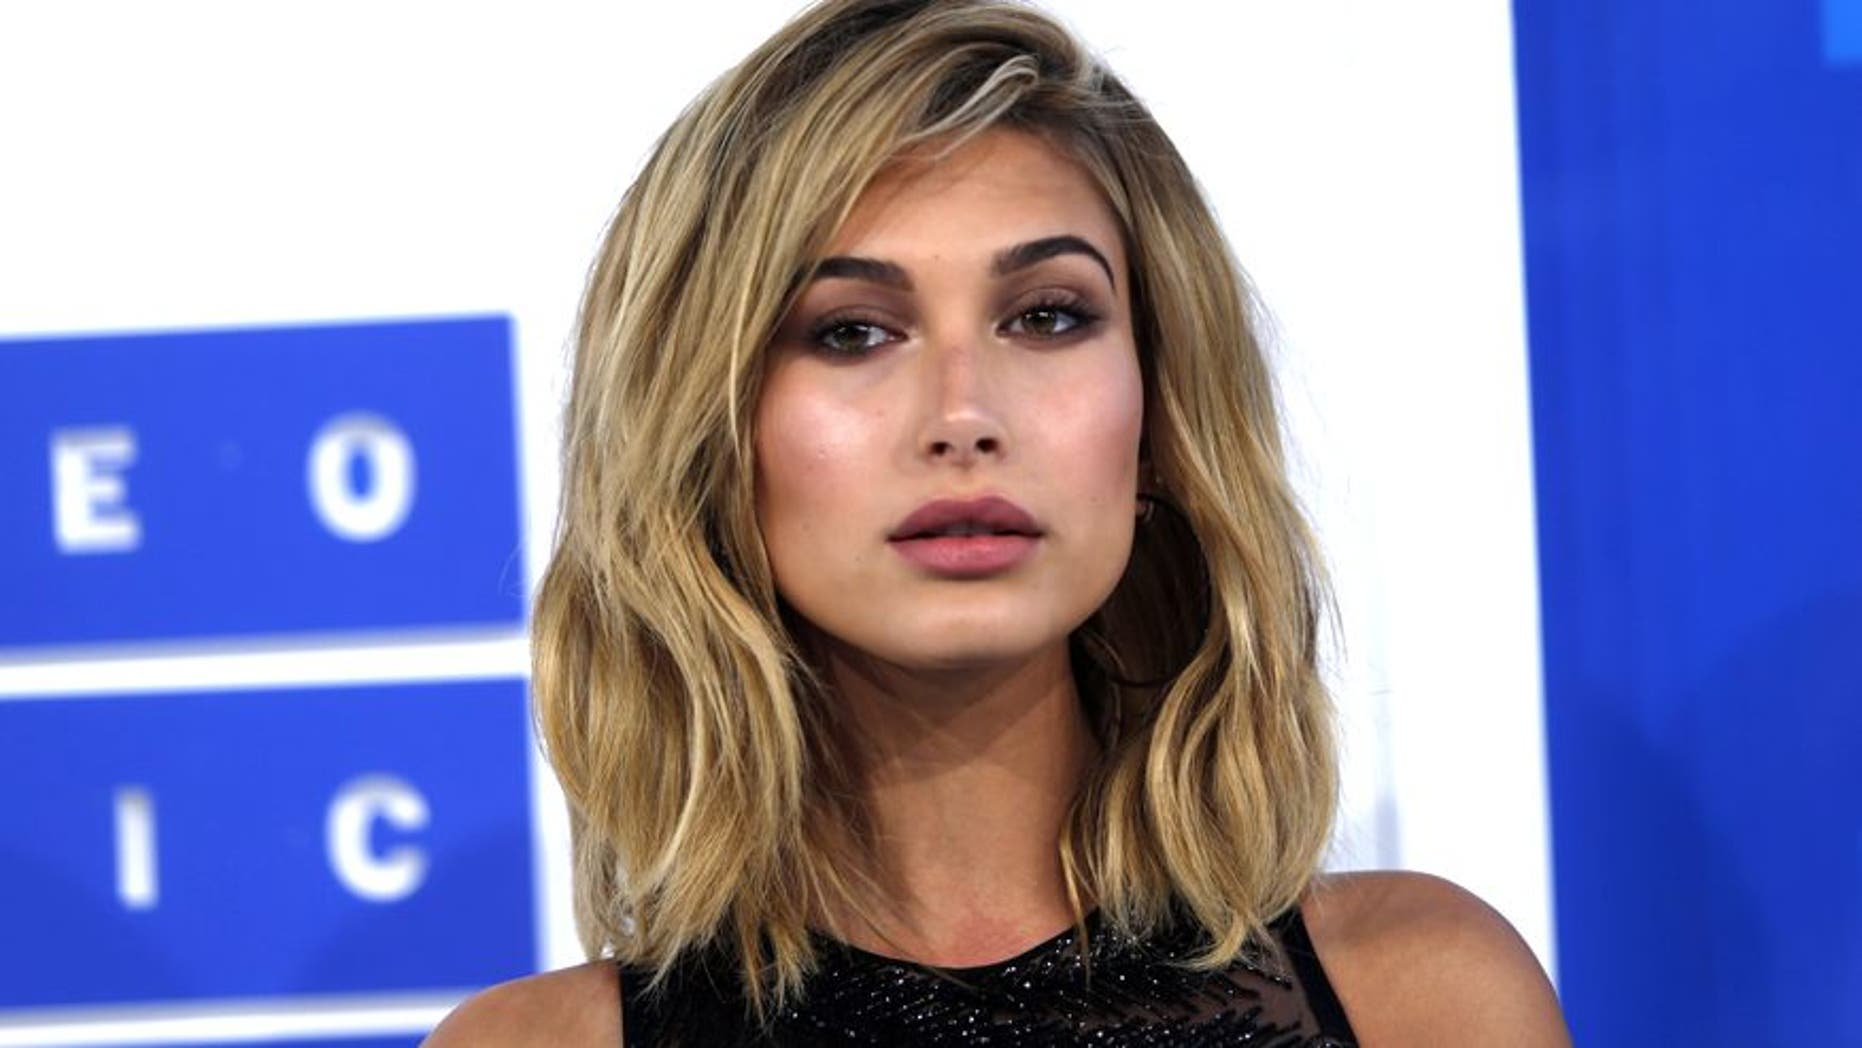 Hailey Baldwin reveals that social media makes her sad